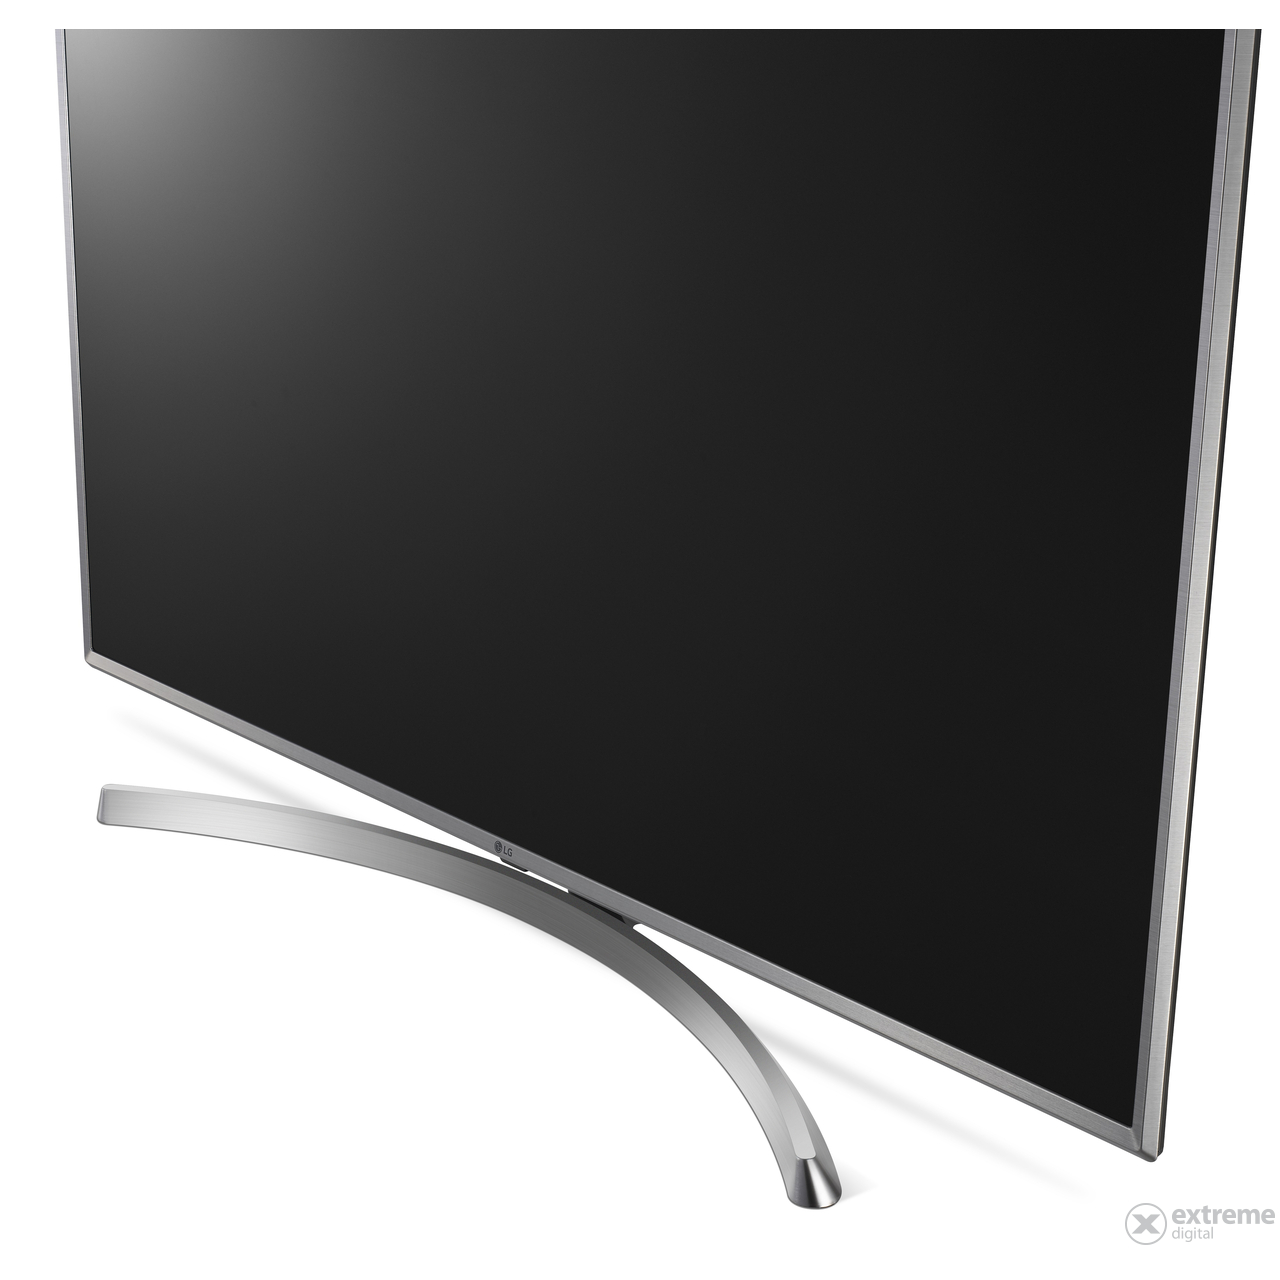 Televizor LG 50UK6950 webOS 4.0 SMART UHD LED